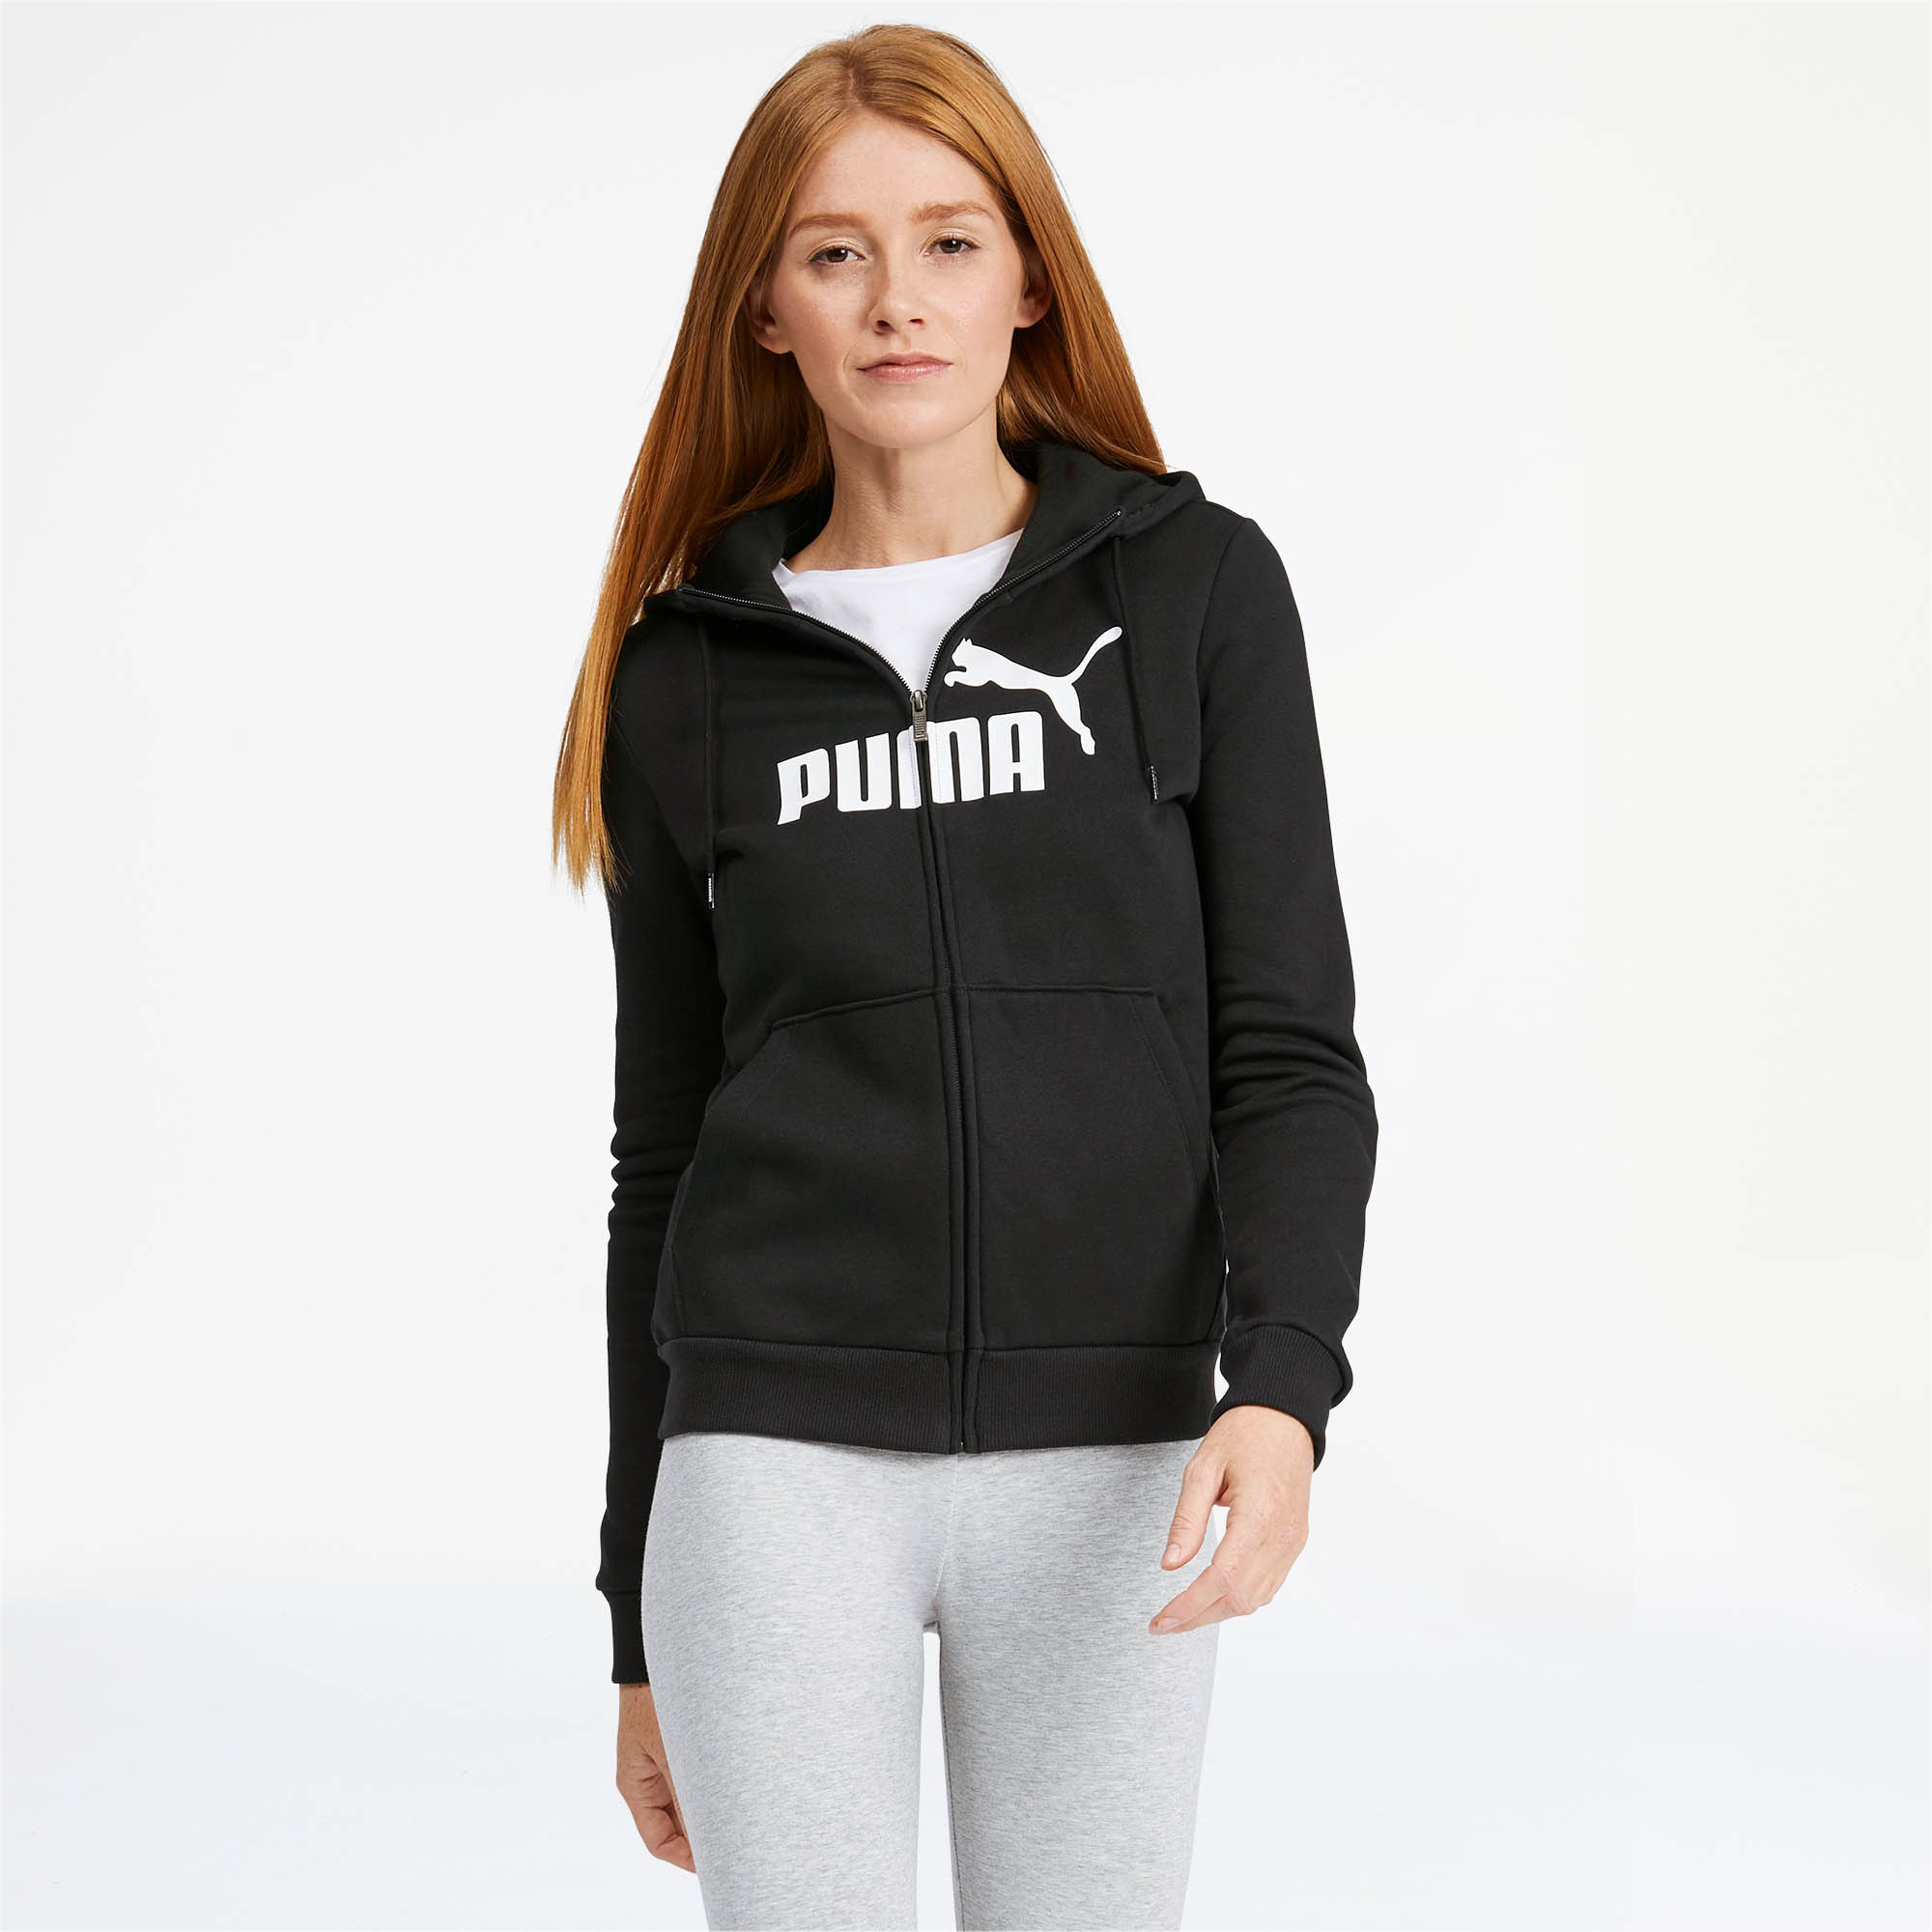 PUMA-Women-039-s-Essential-Fleece-Hooded-Jacket-Women-Sweat-Basics thumbnail 4